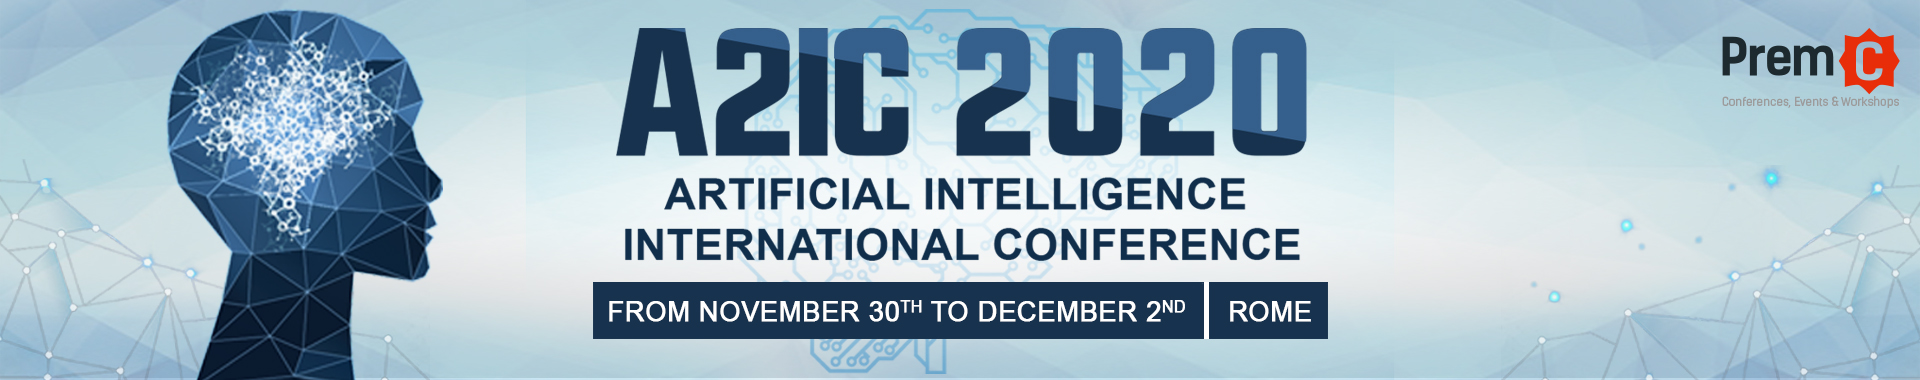 Artificial Intelligence International Conference banner